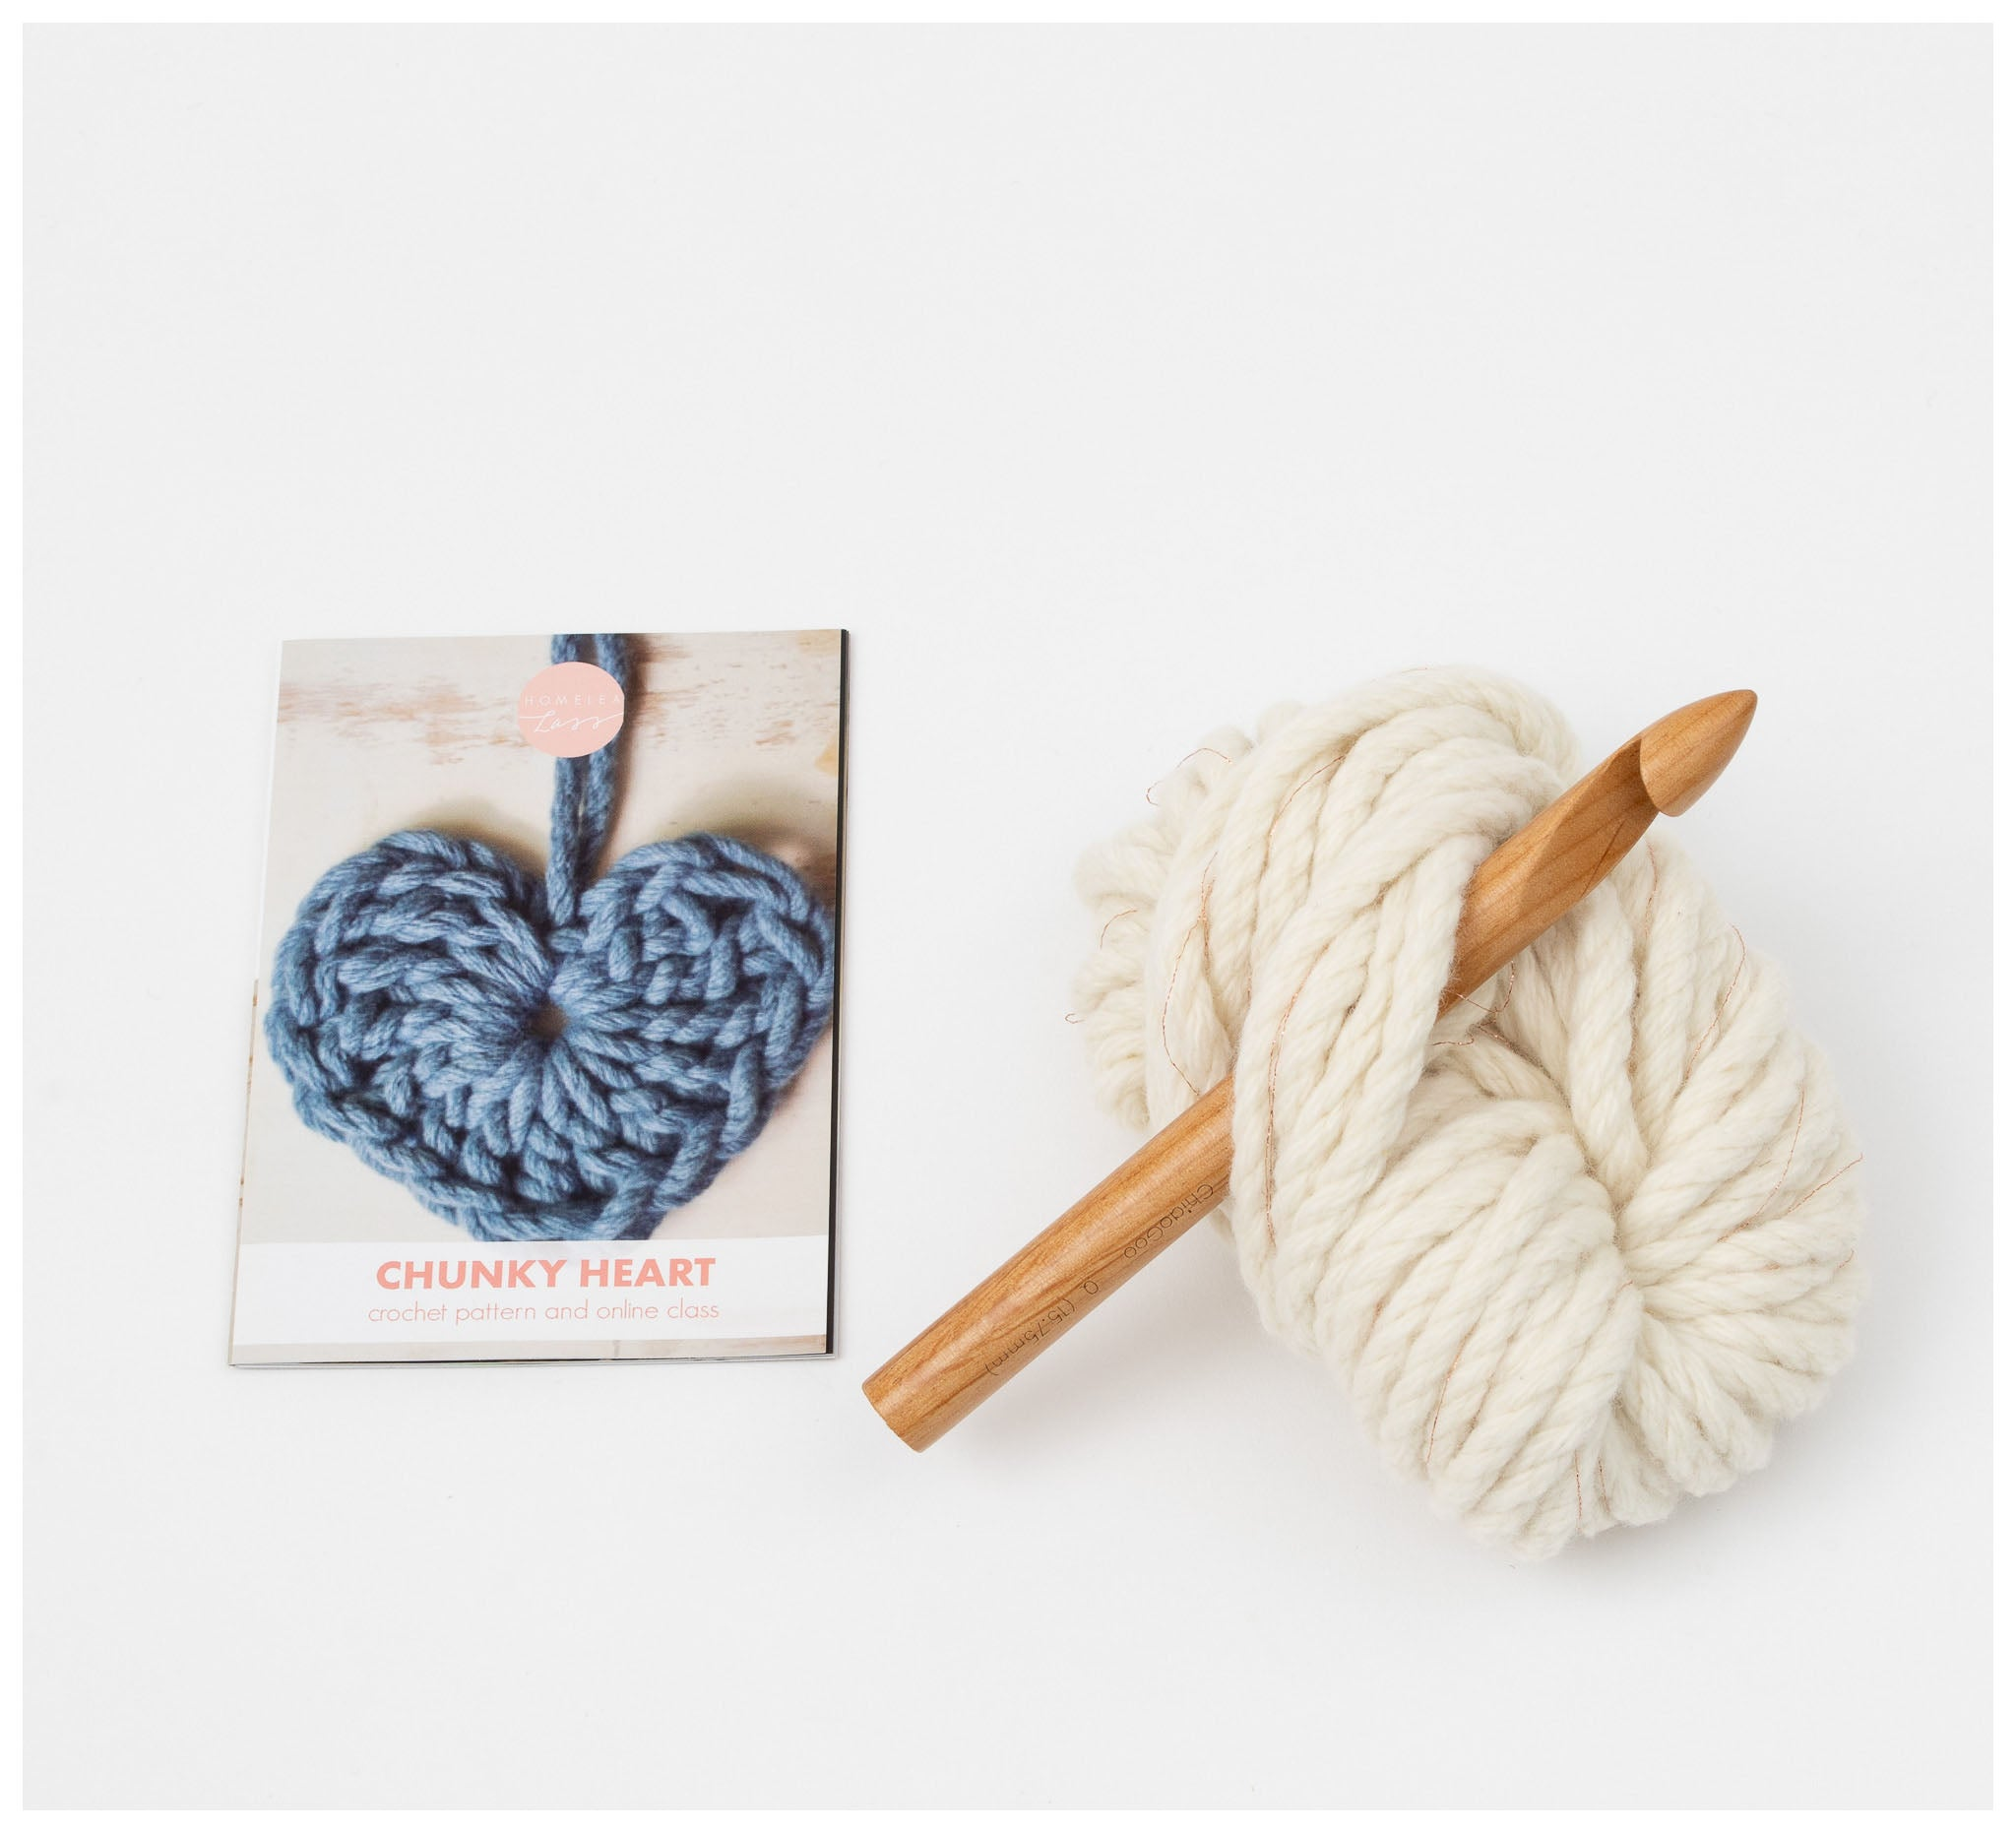 Homelea Lass - Chunky Heart Crochet Kit - Natural with Rose Sparkle